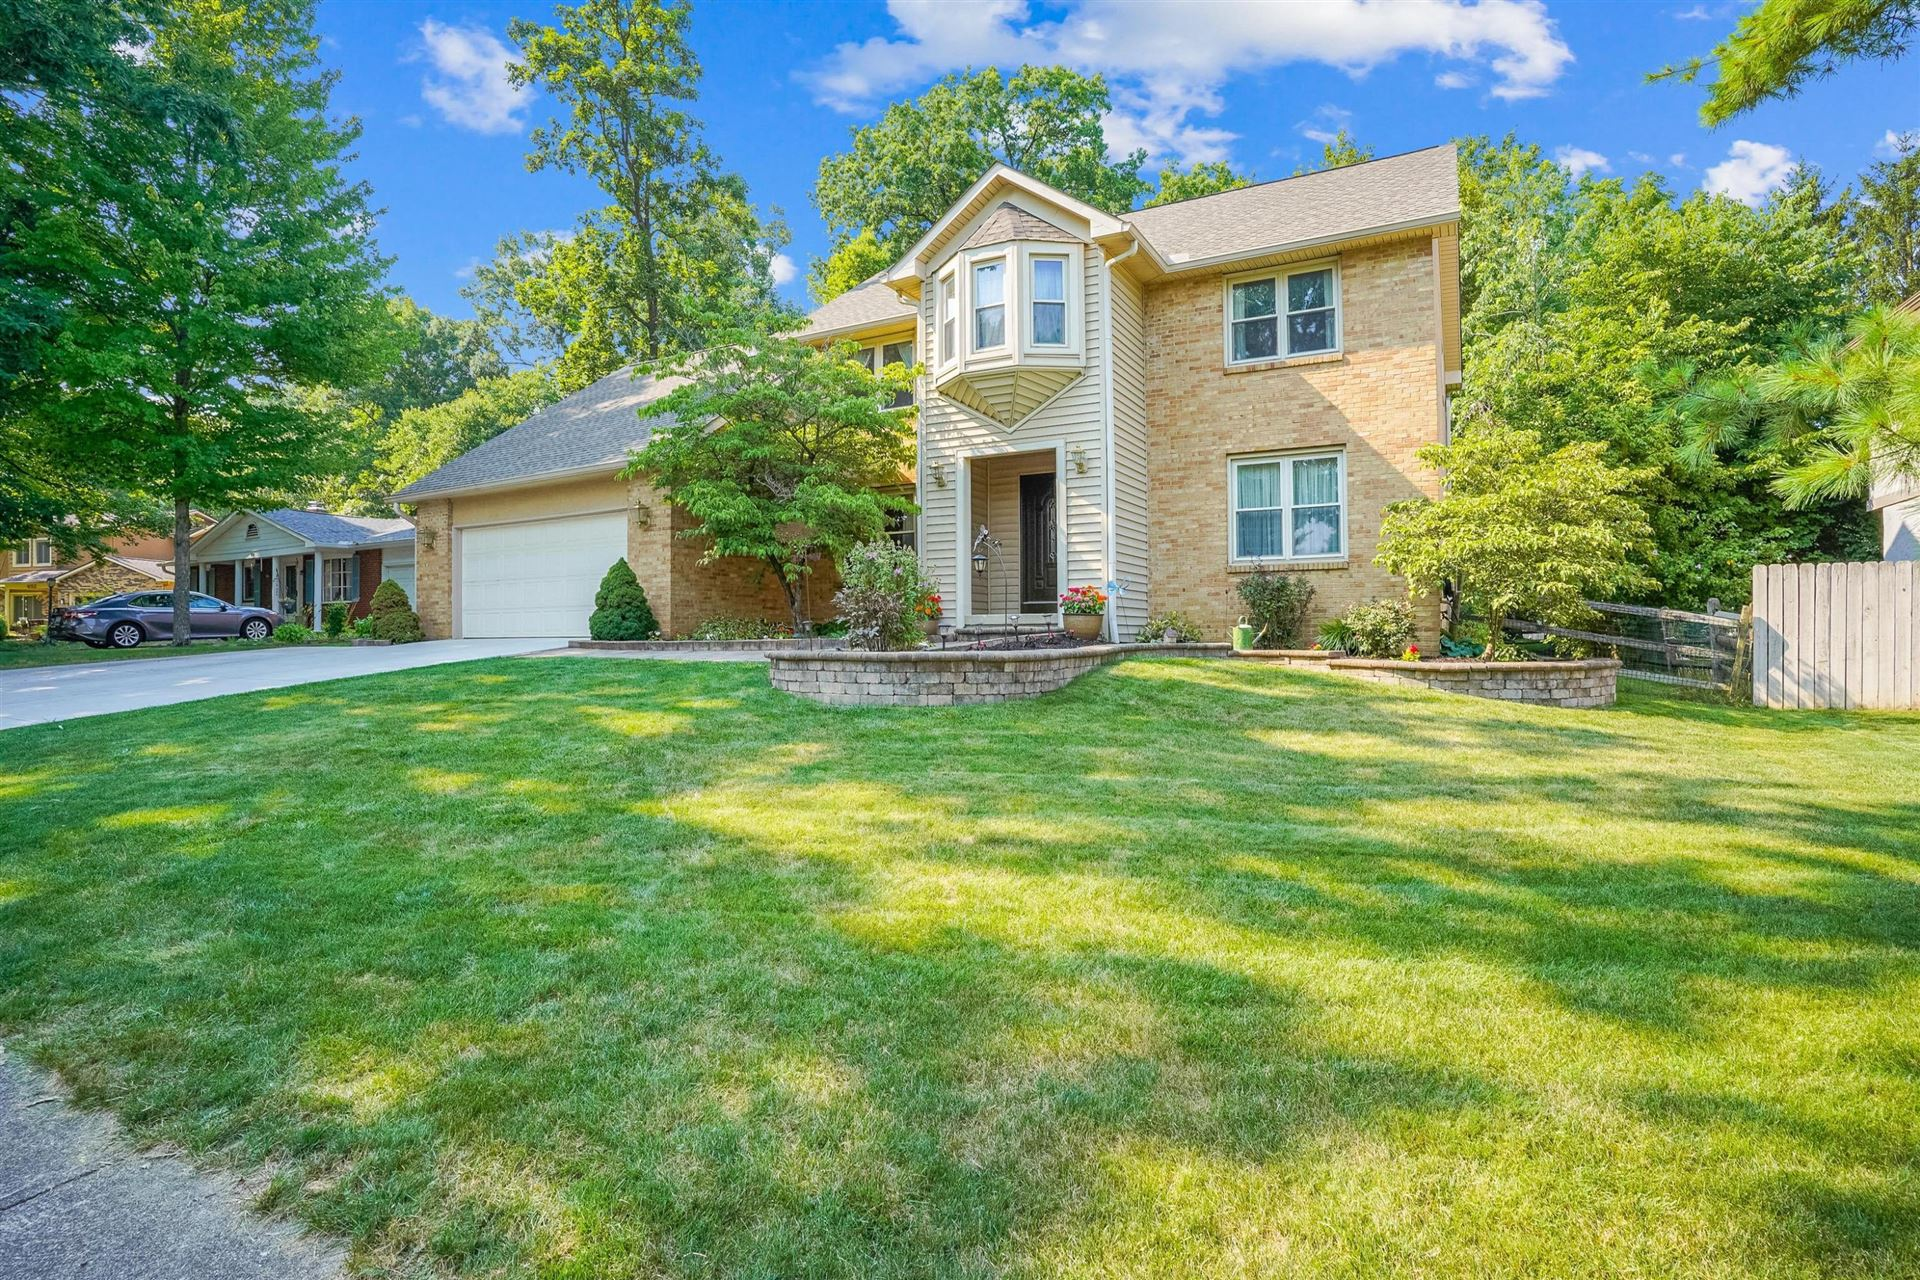 Photo of 664 Concord Court, Westerville, OH 43081 (MLS # 221028640)